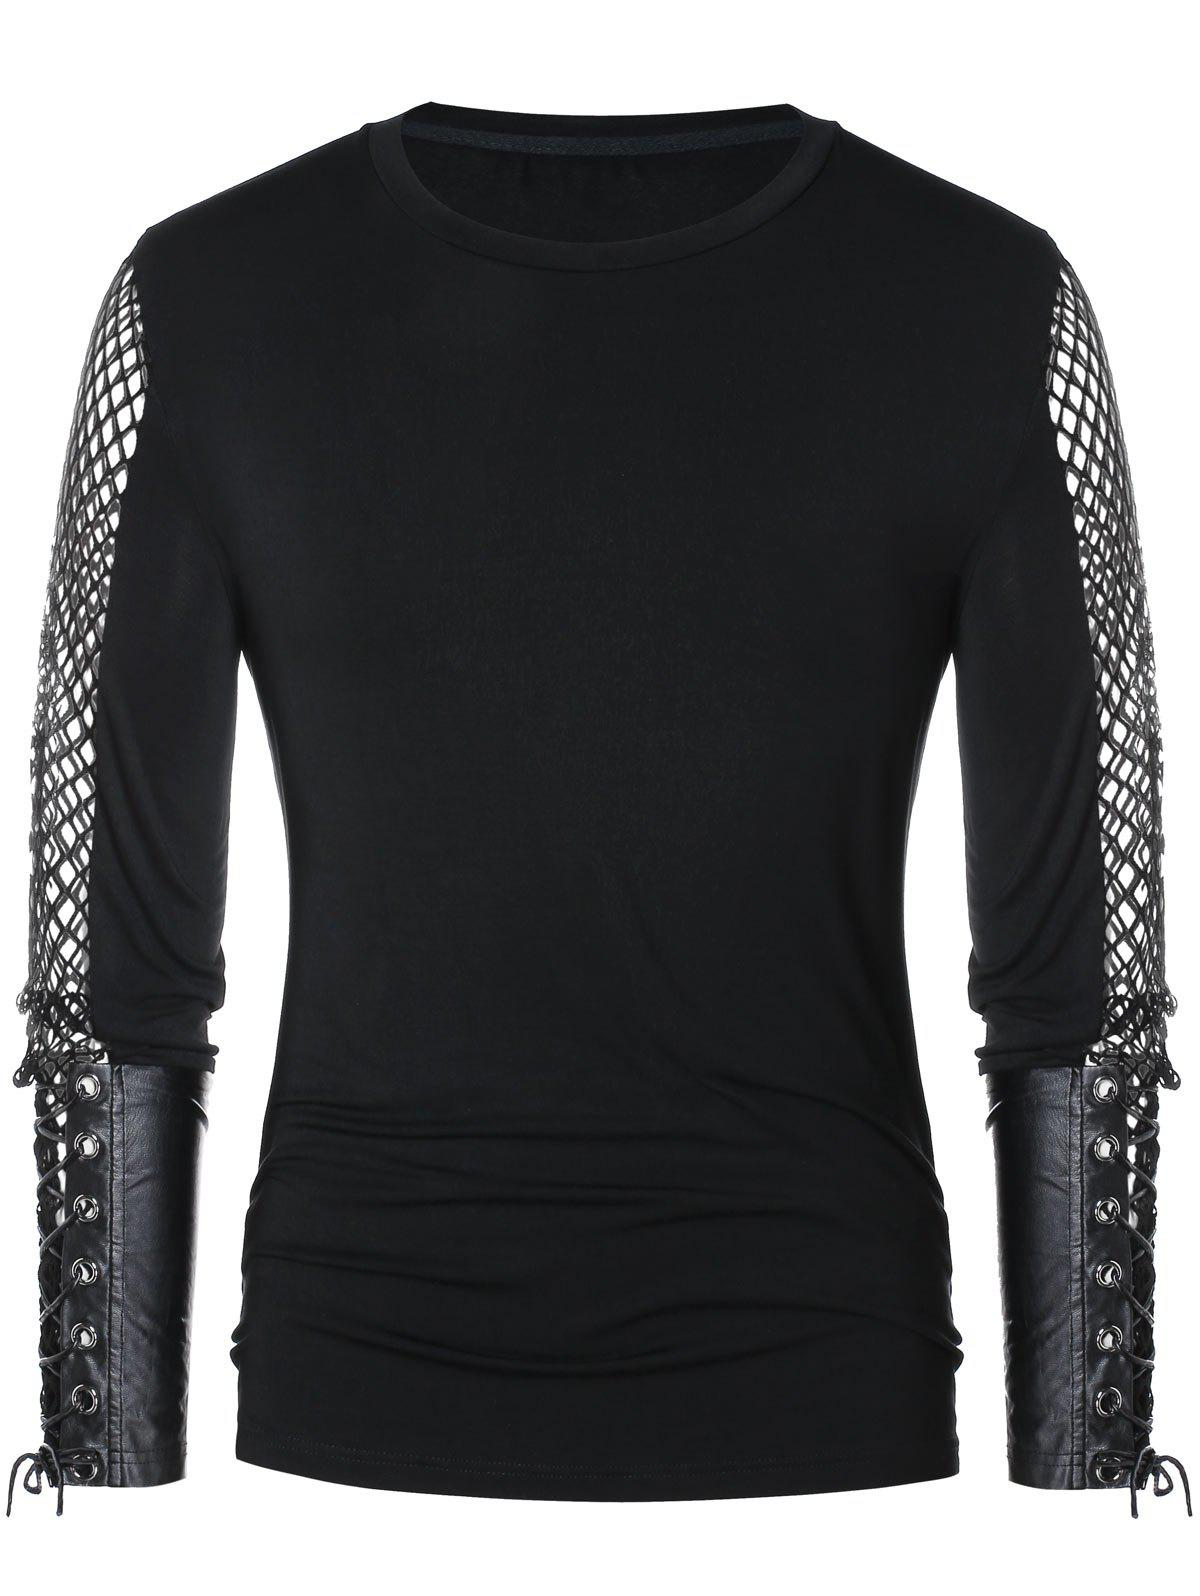 Discount Openwork Lace Up Long Sleeve T-shirt